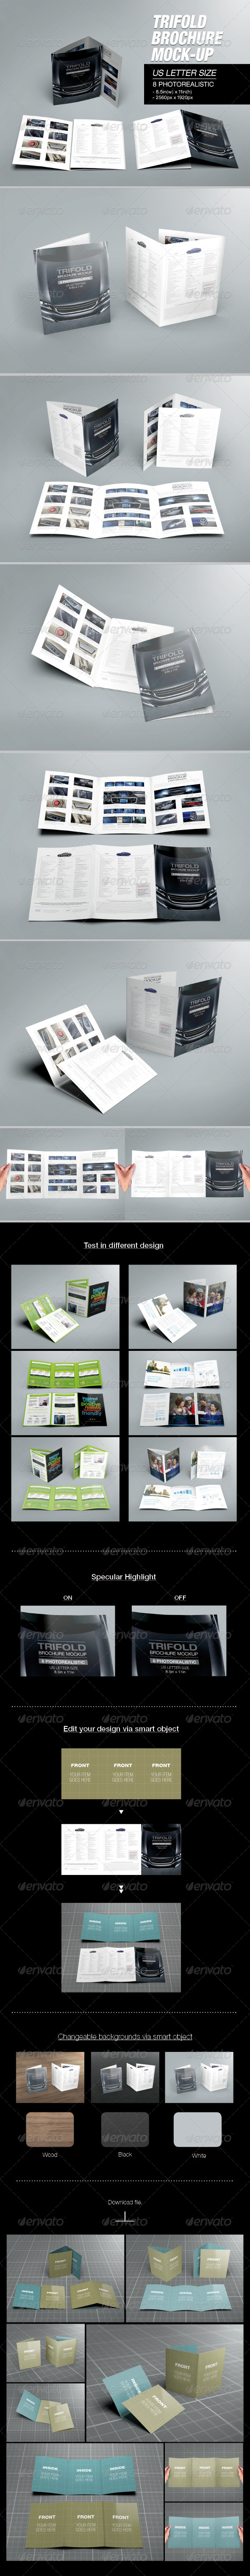 GraphicRiver Trifold Brochure Mock-up 02 7186420